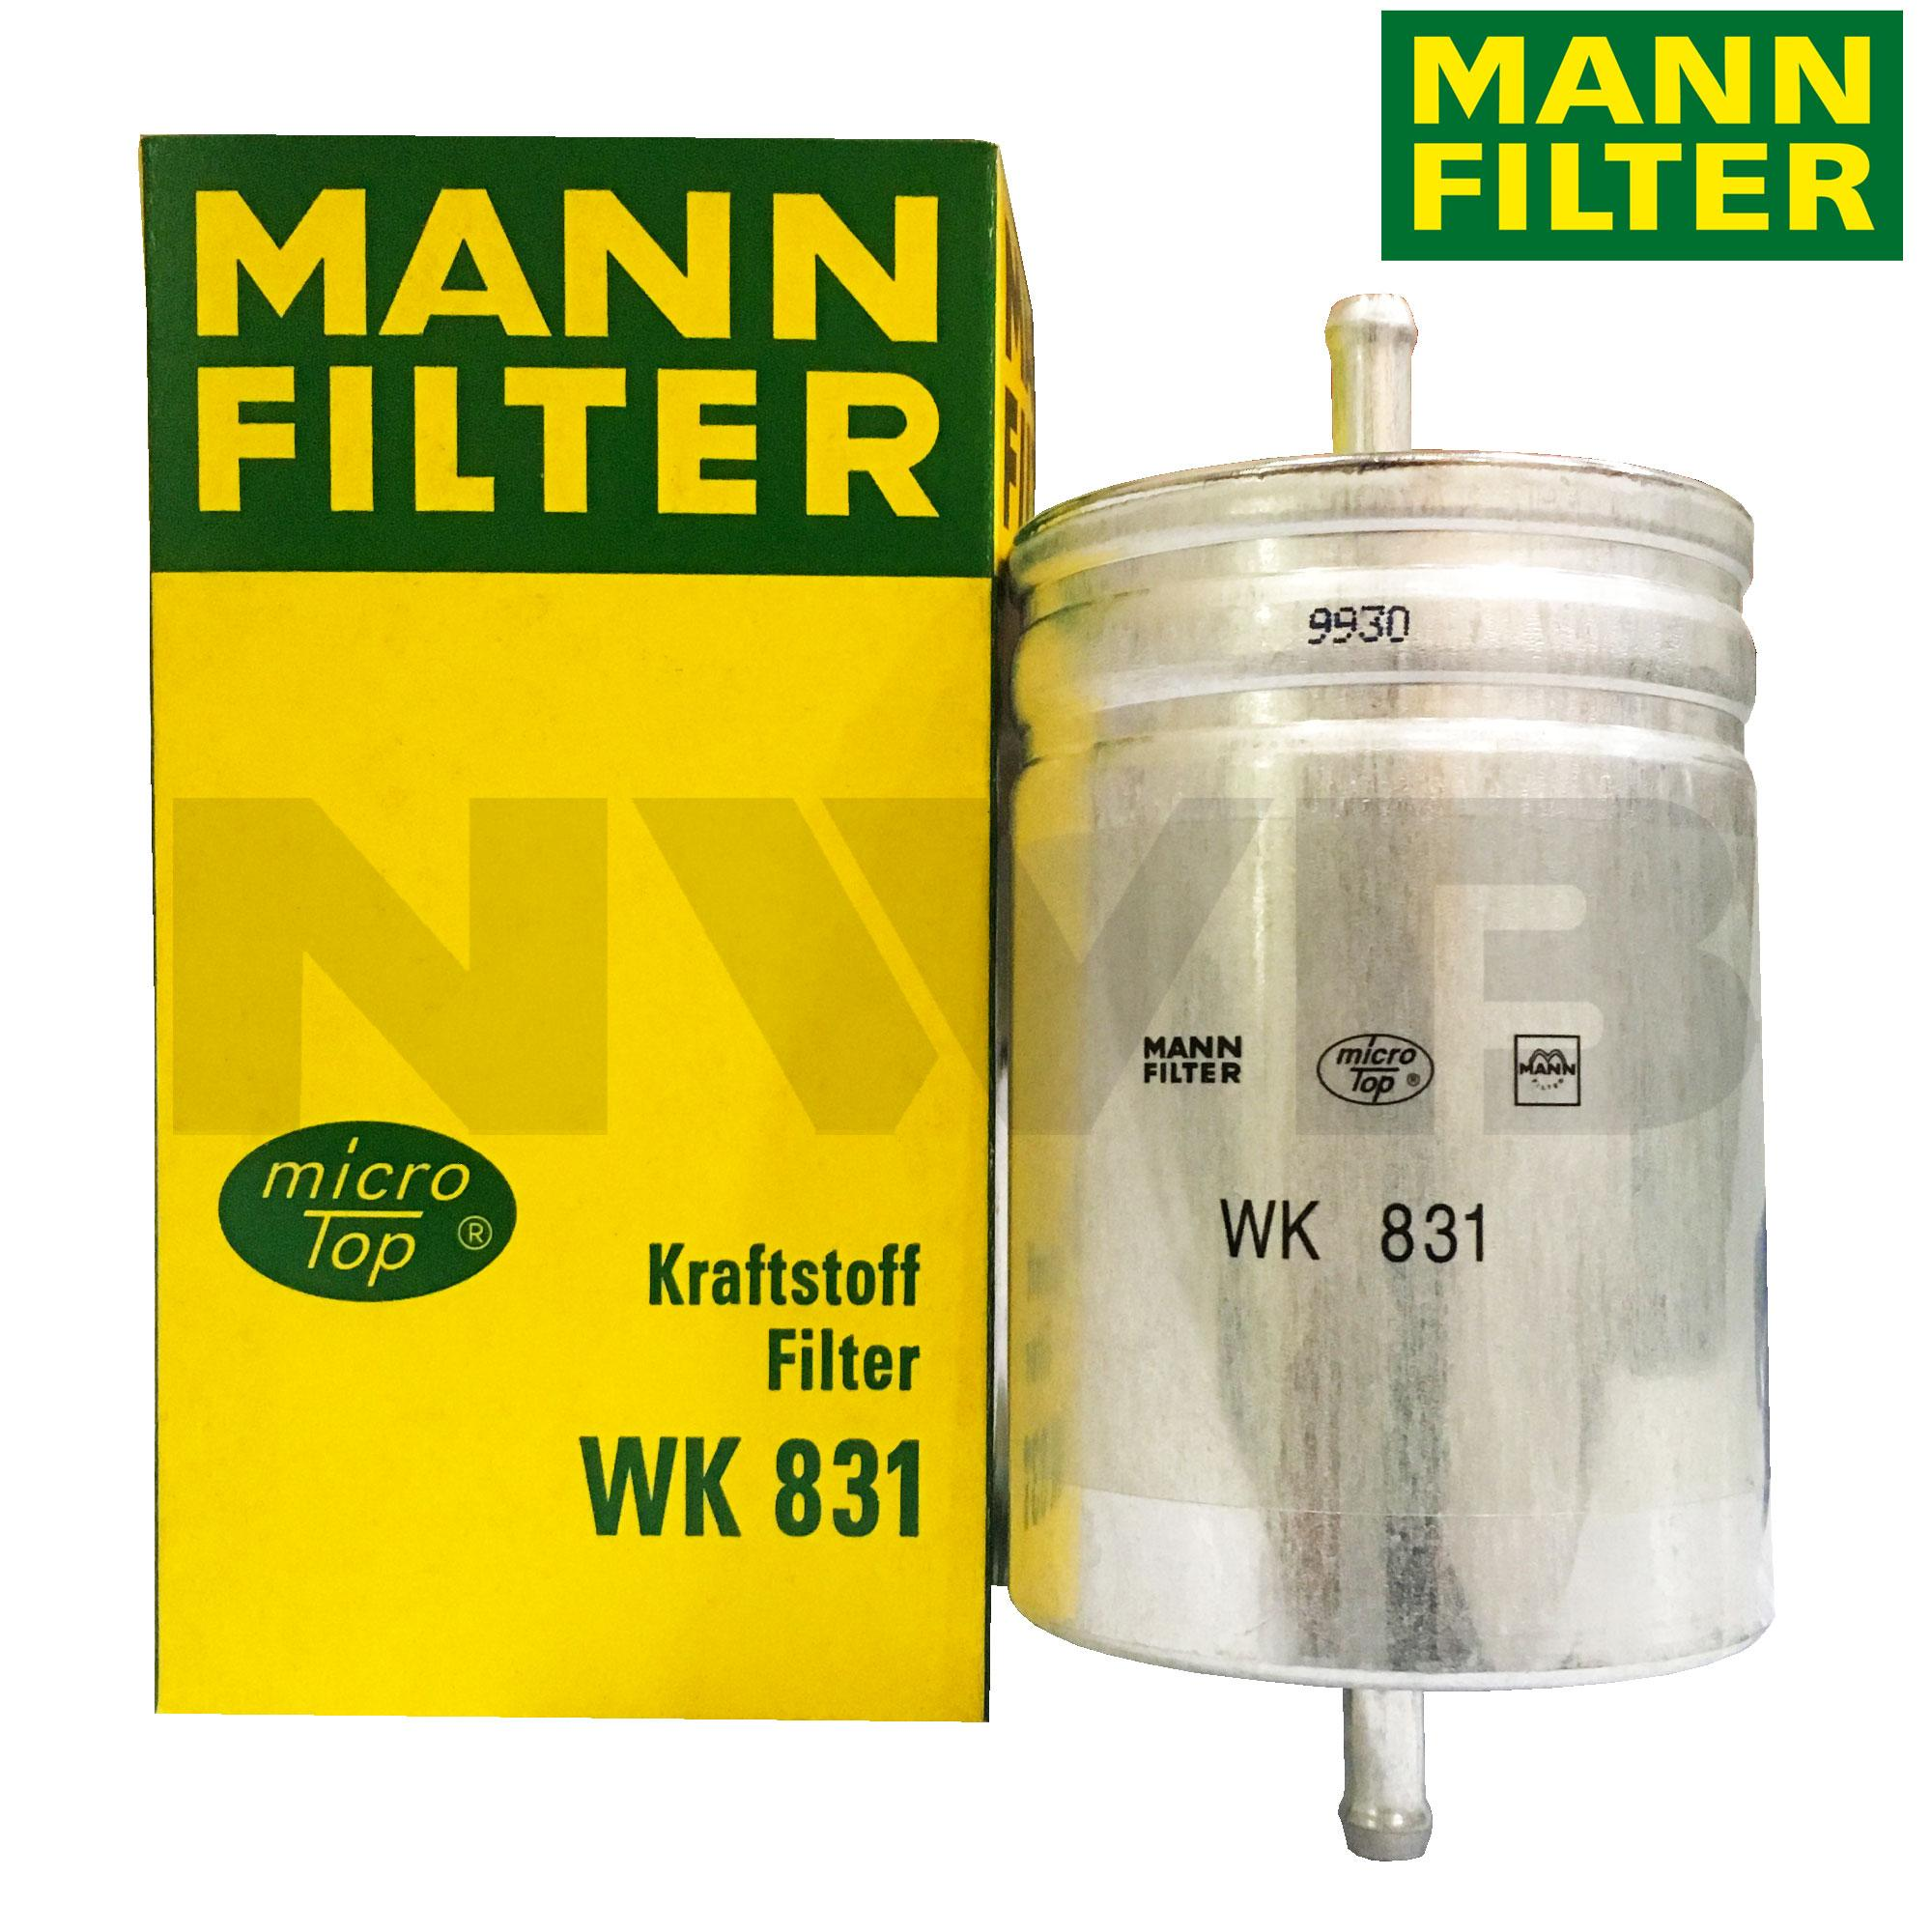 Fuel Filter For Sale Gas Online Brands Prices Reviews In Changing Mercedes Mann Benz C220 W202 Clk Slk 1994 1998